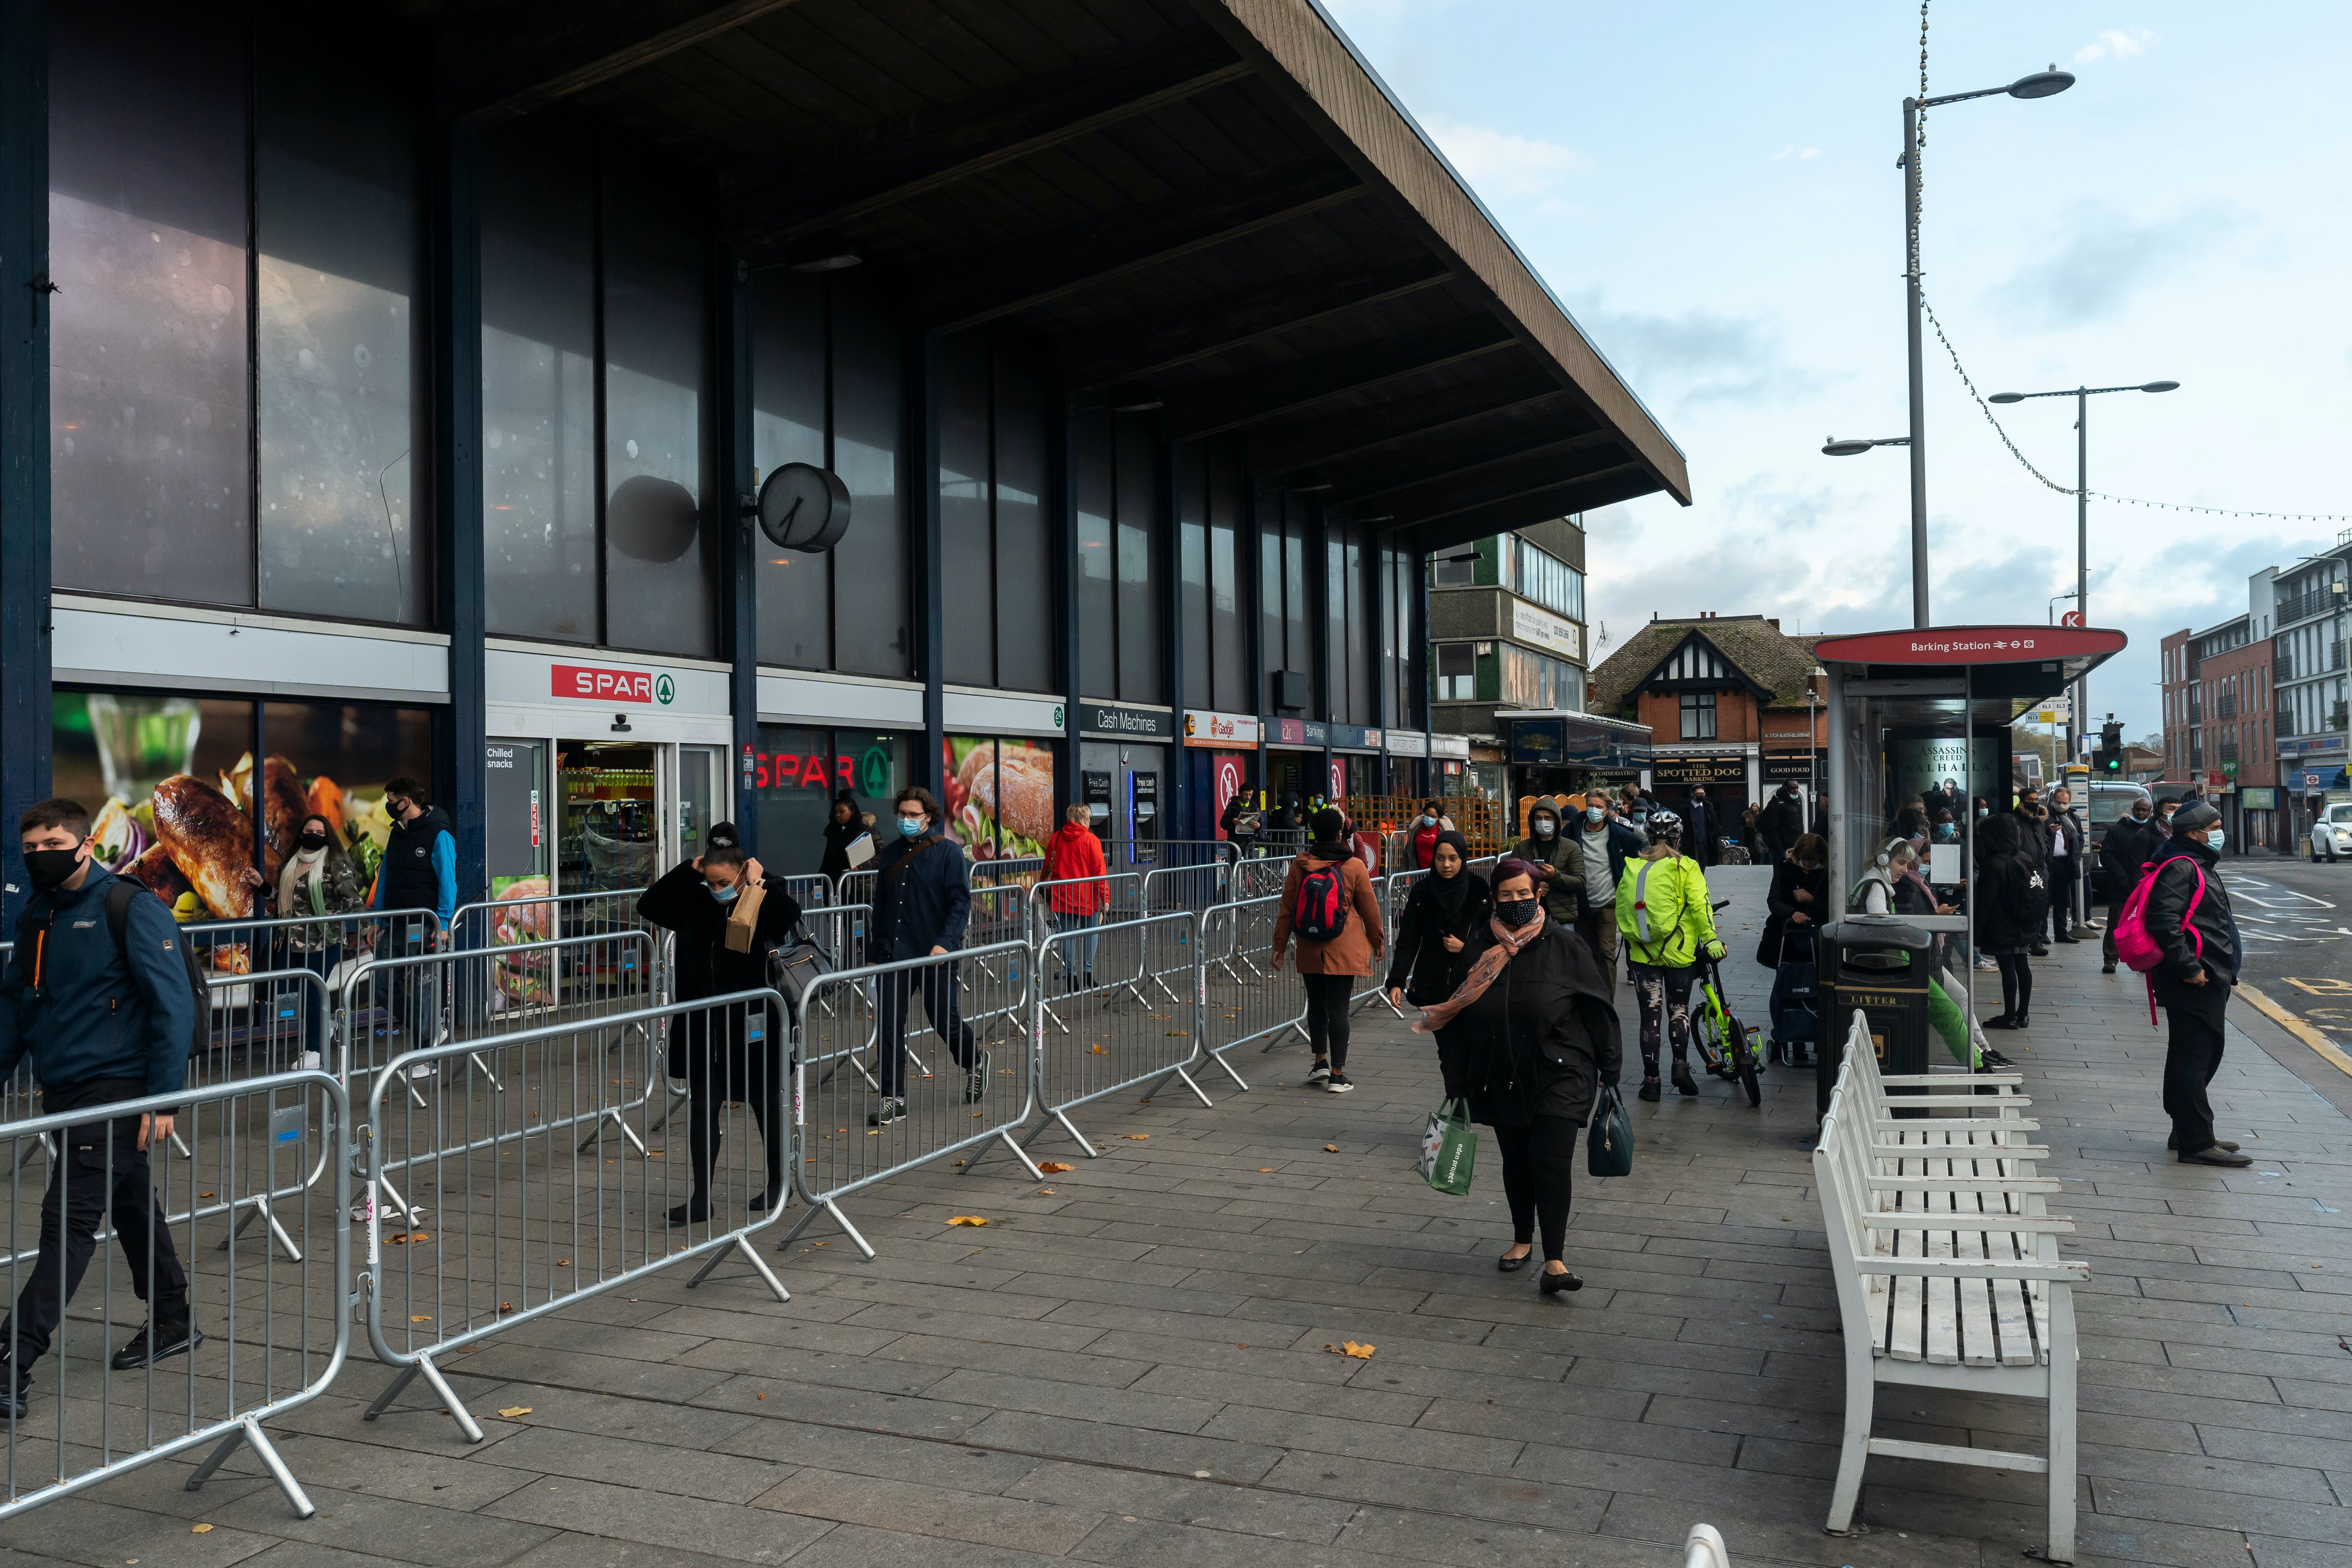 The barriers increase crowding on the station forecourt